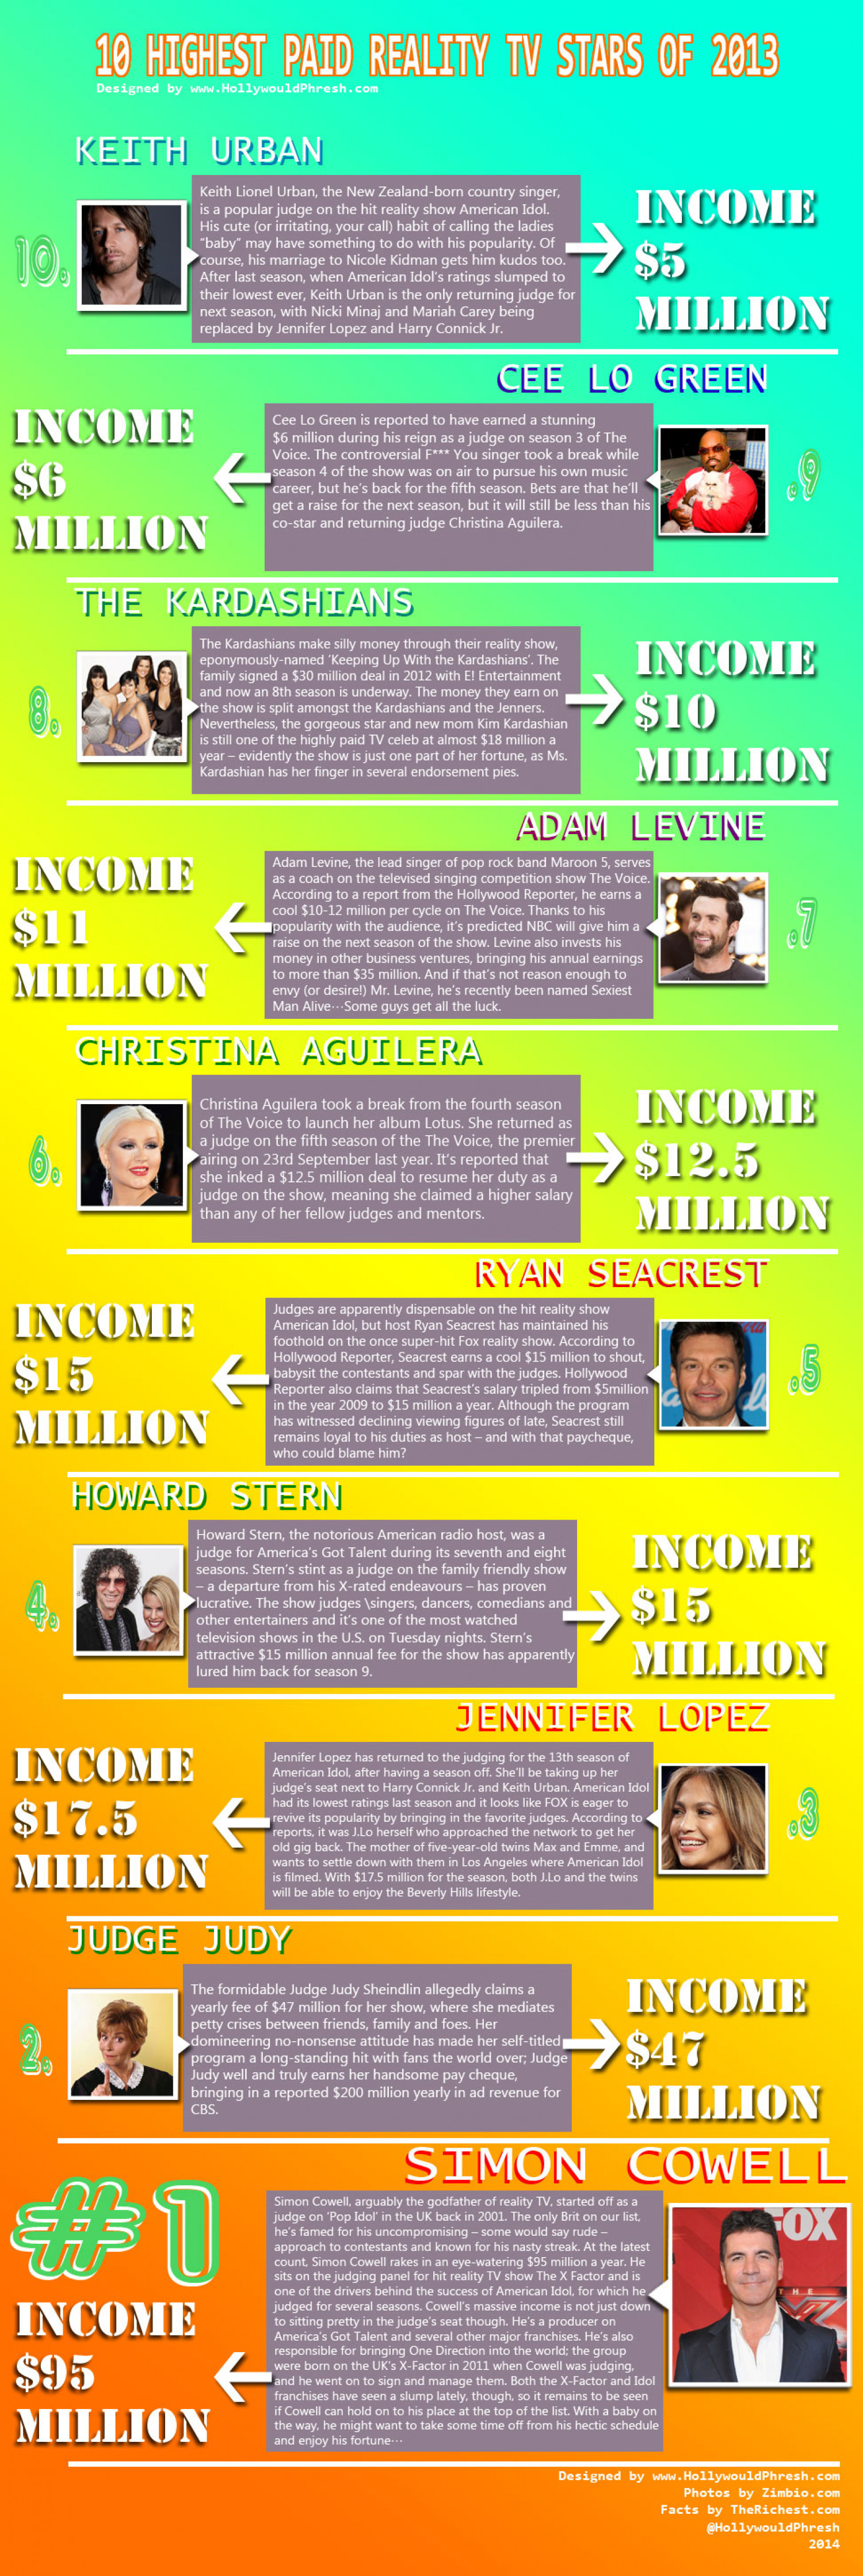 10 Highest Paid Reality TV Stars of 2013 Infographic